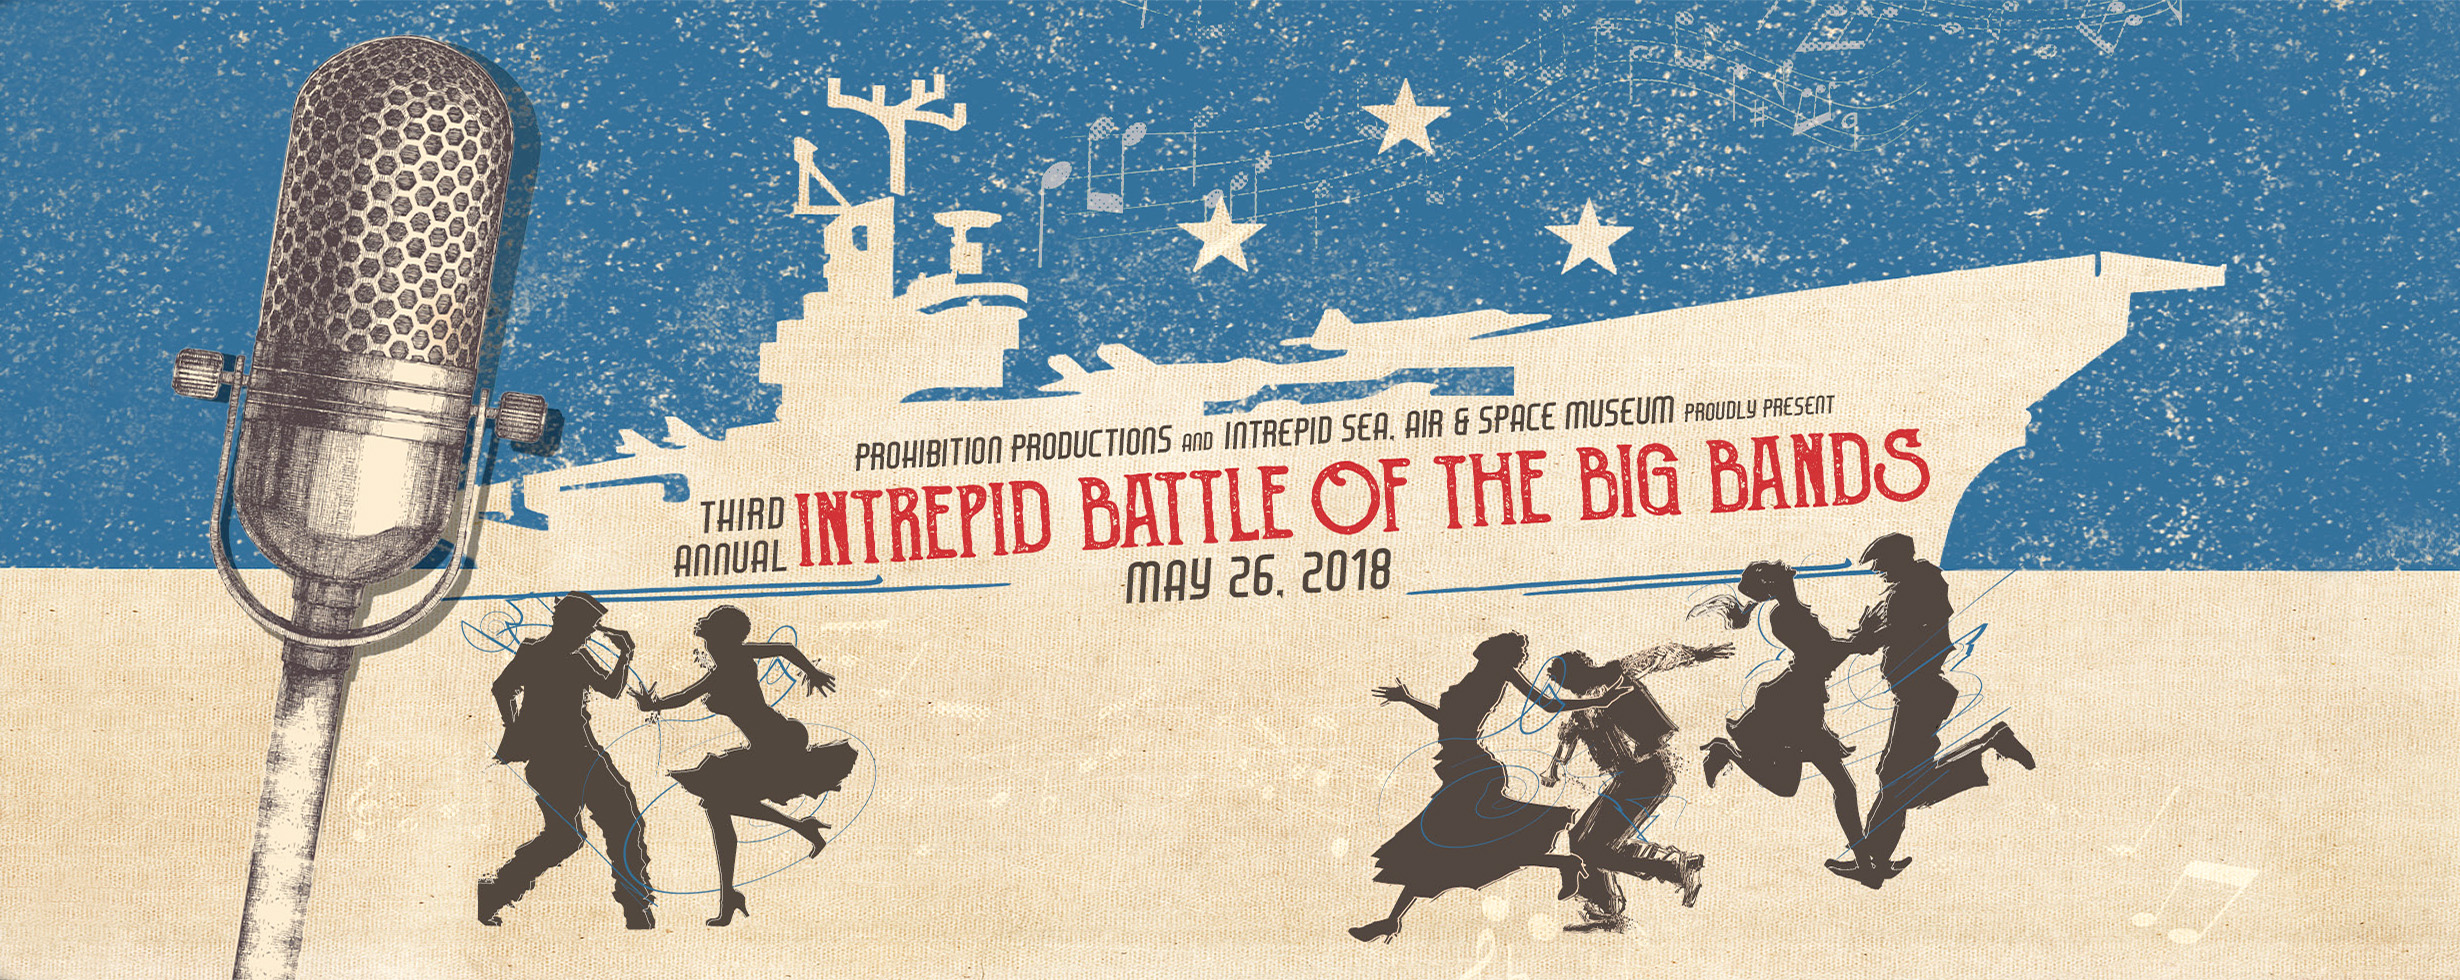 INTREPID: Battle of Big Bands (May 26, 2018)